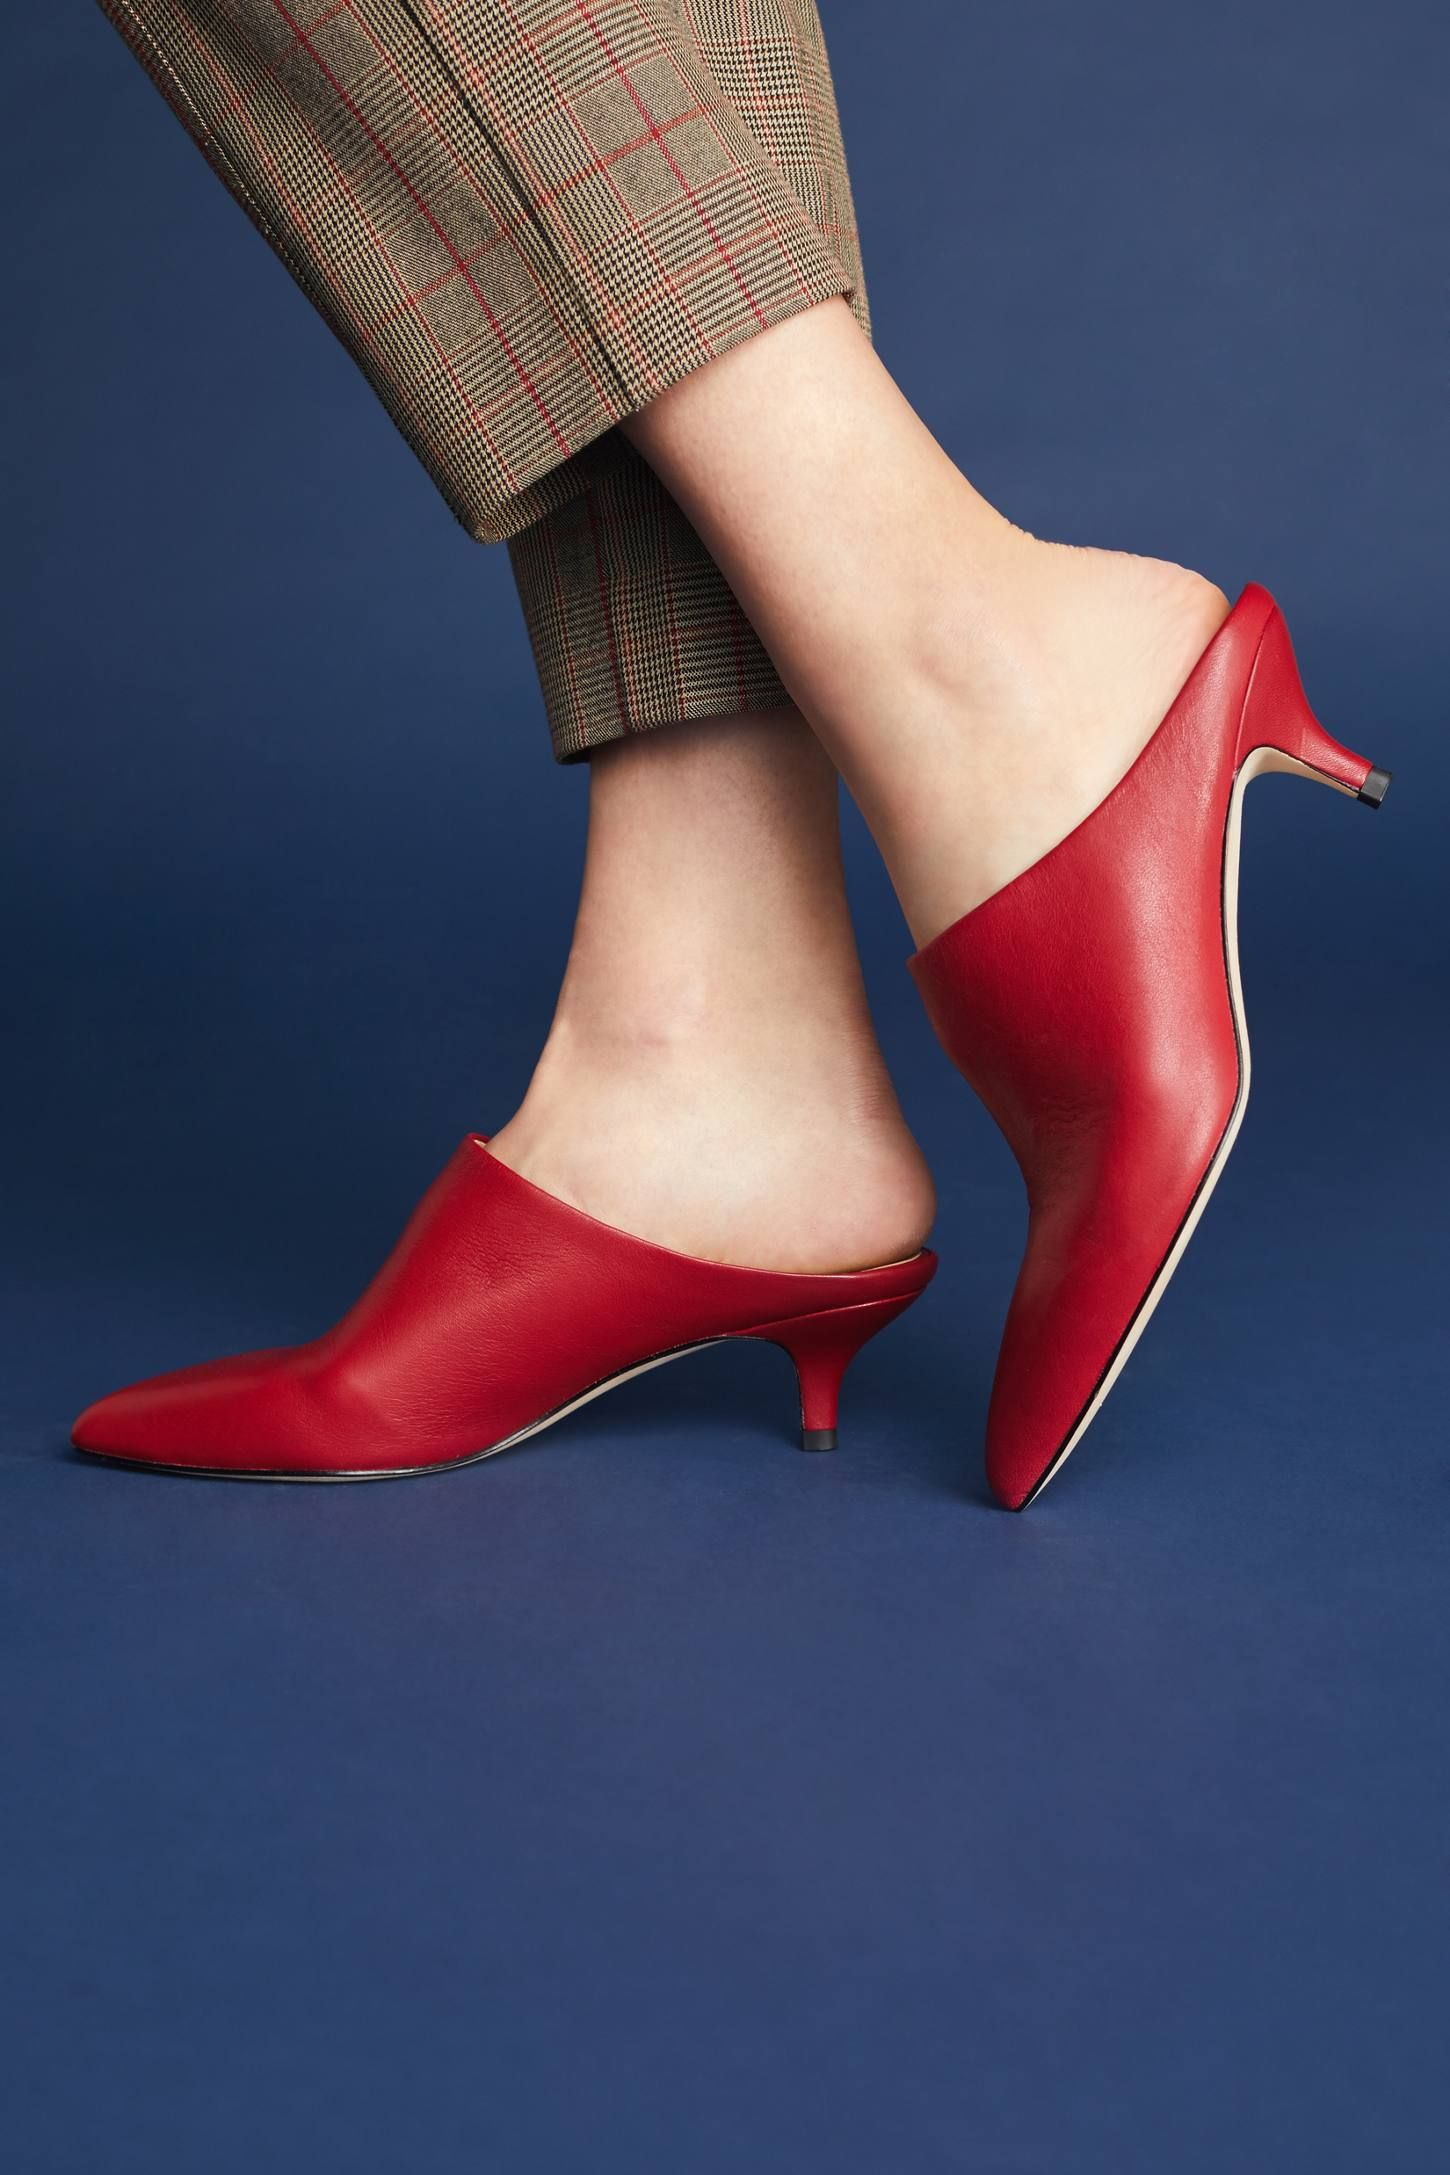 Shop The Pour La Victoire Korrine Kitten Heeled Mules And More Anthropologie At Anthropologie Today Read Custo Italian Sandals Women Kitten Heels Heeled Mules